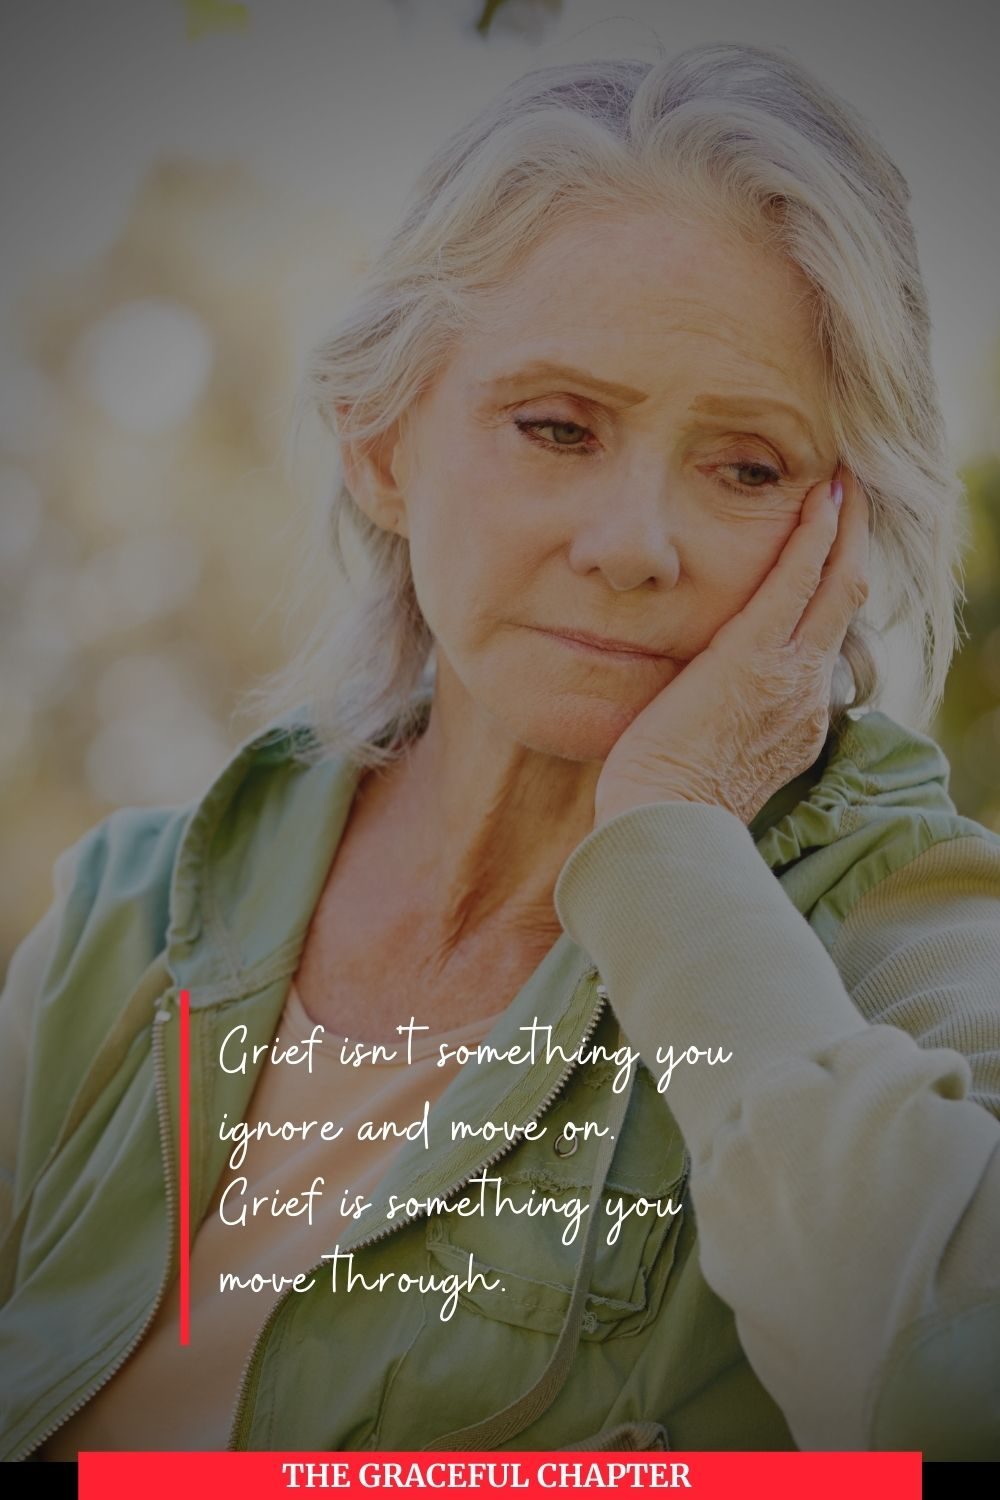 grief isn't something you ignore and move on, grief is something you move through